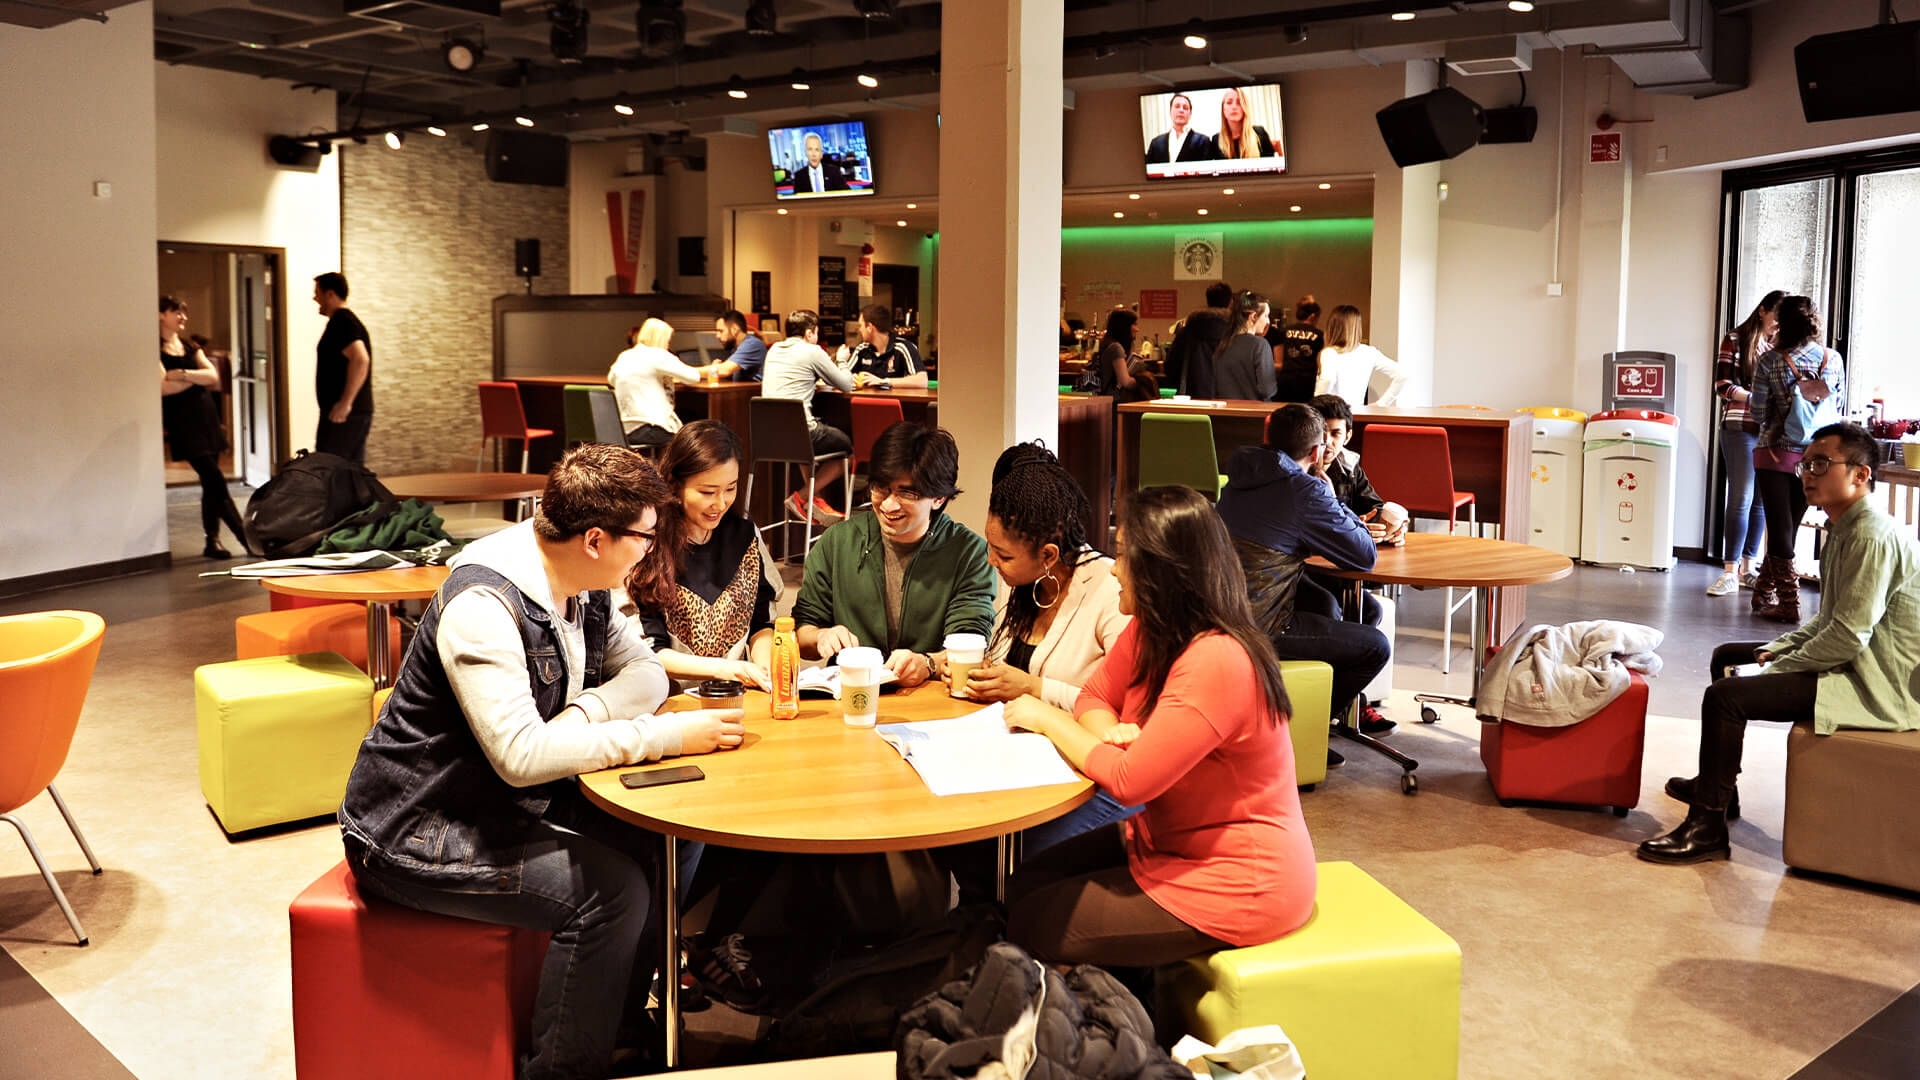 Students eating and drinking in one of the University of Stirling's  on-campus cafes